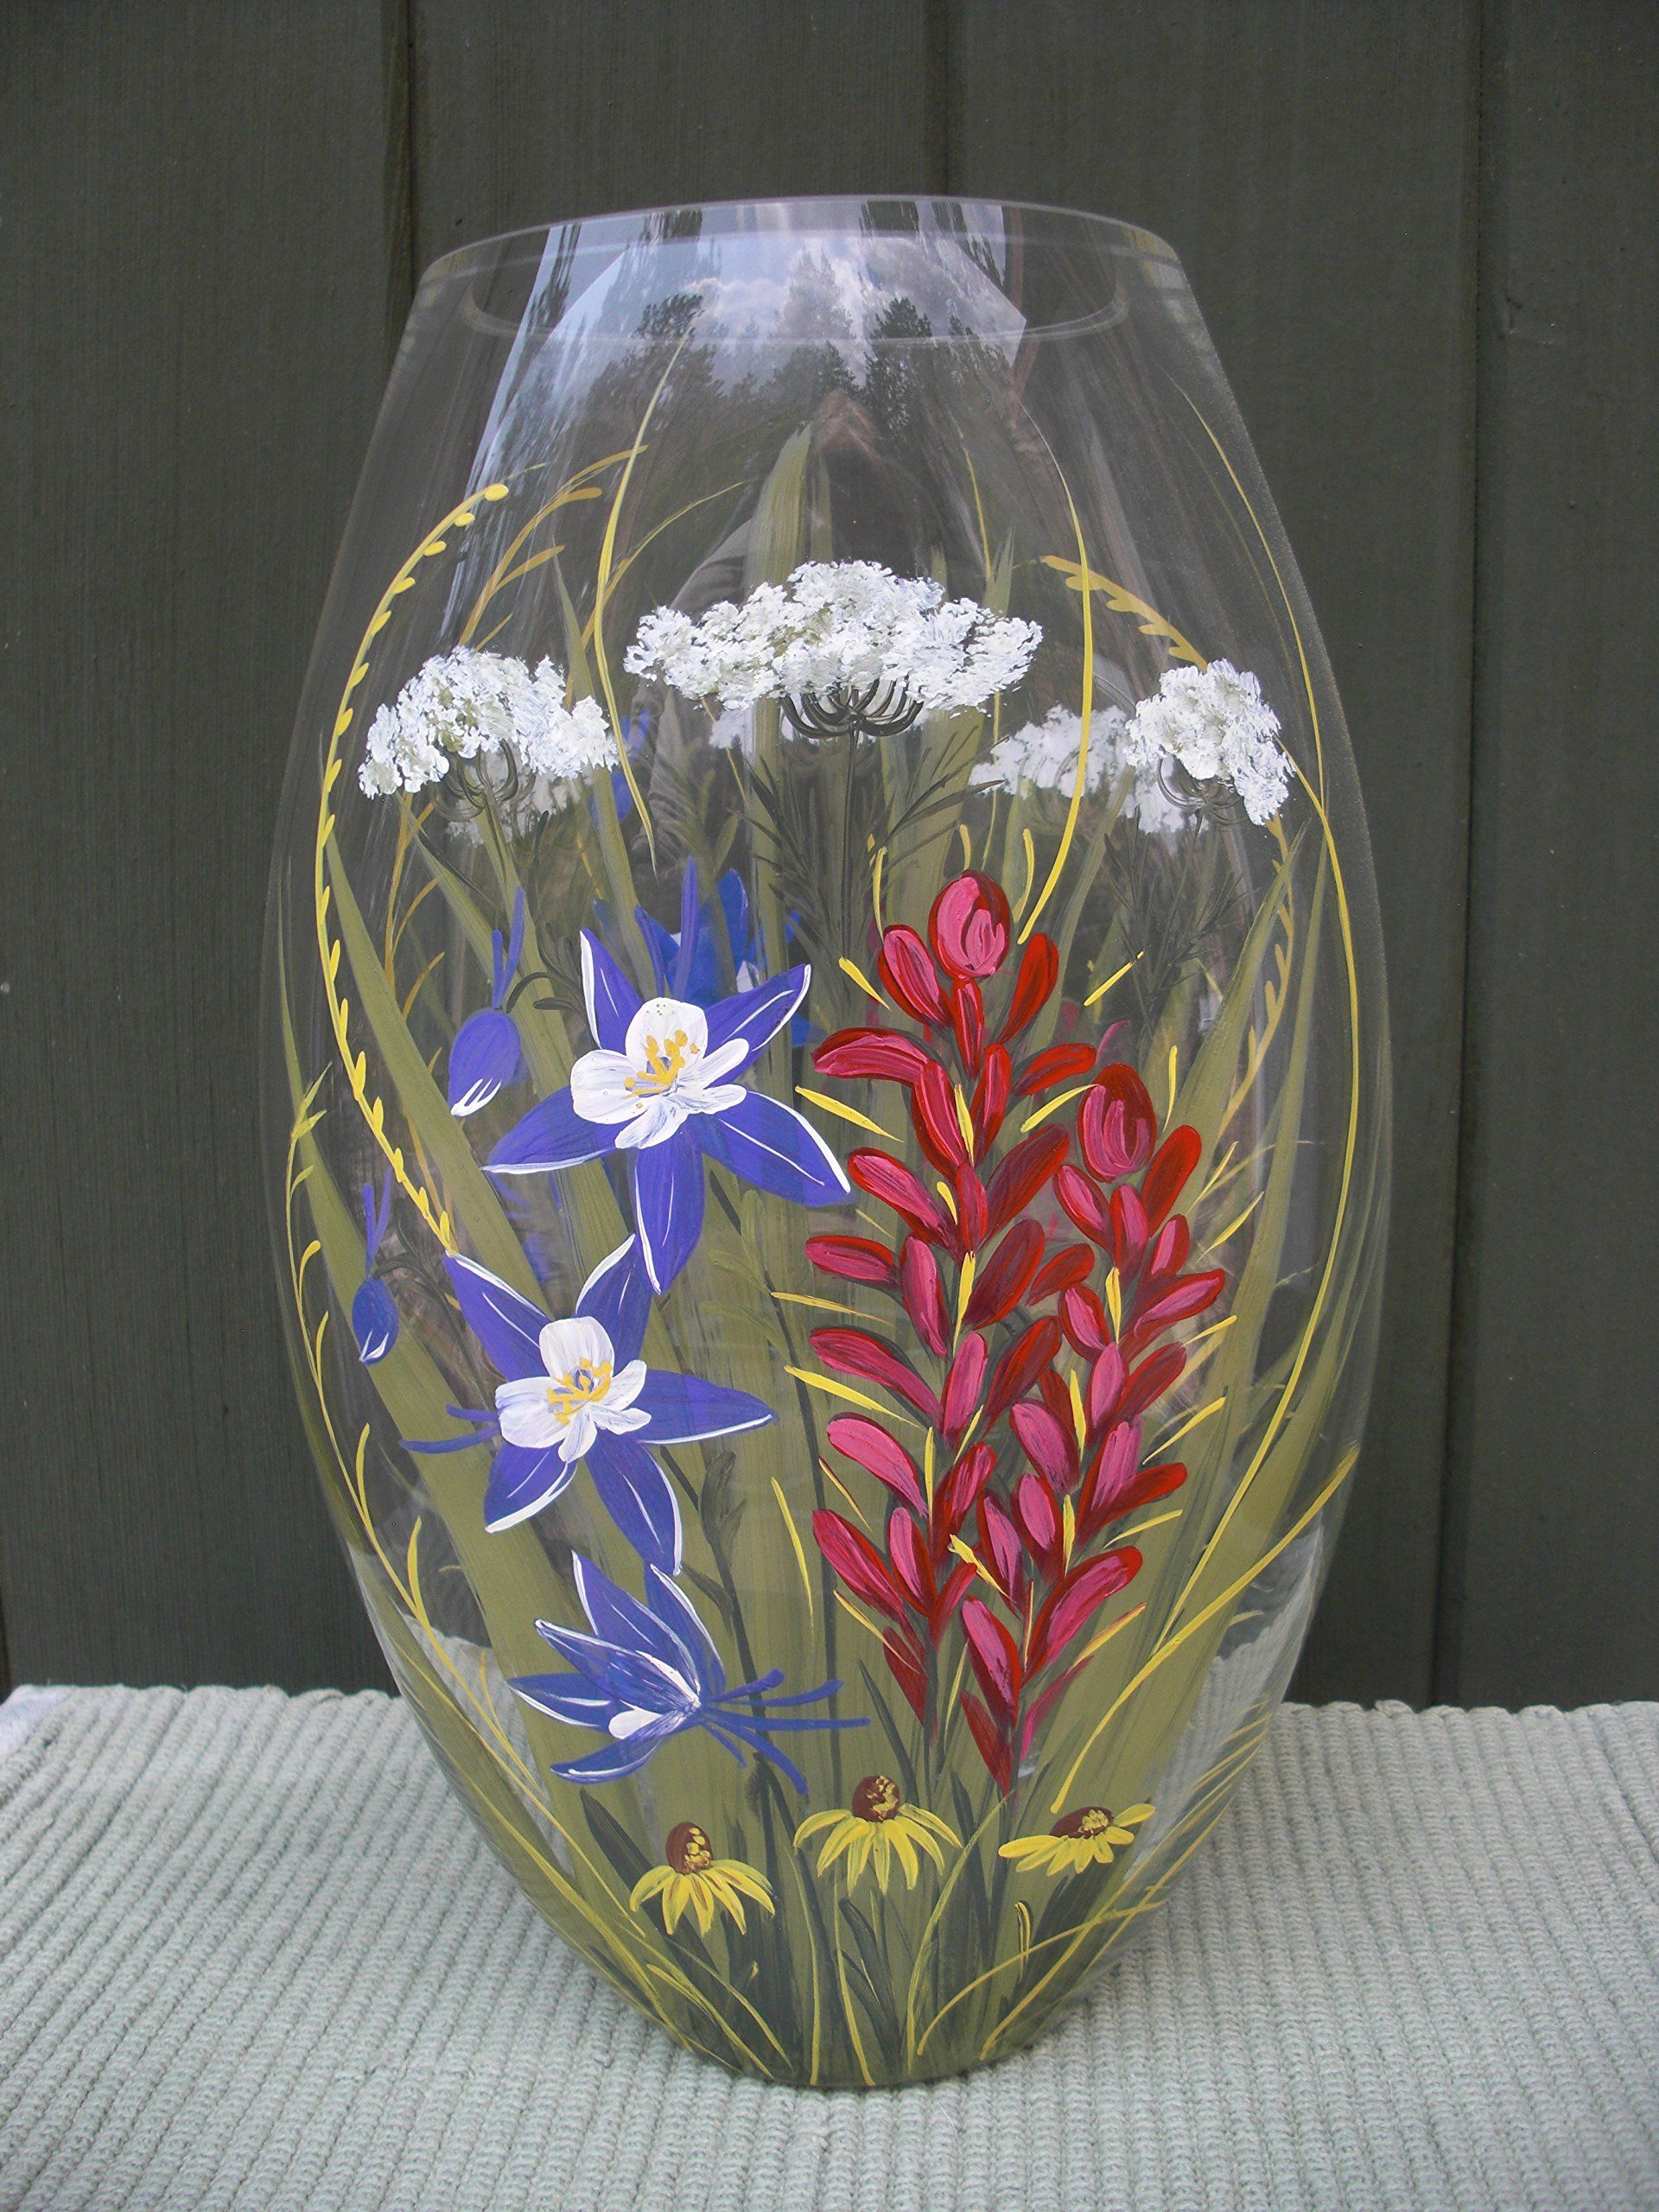 mikasa florist flower il photo flores fullxfull vase vintage listing vases ware styled gallery flared crystal